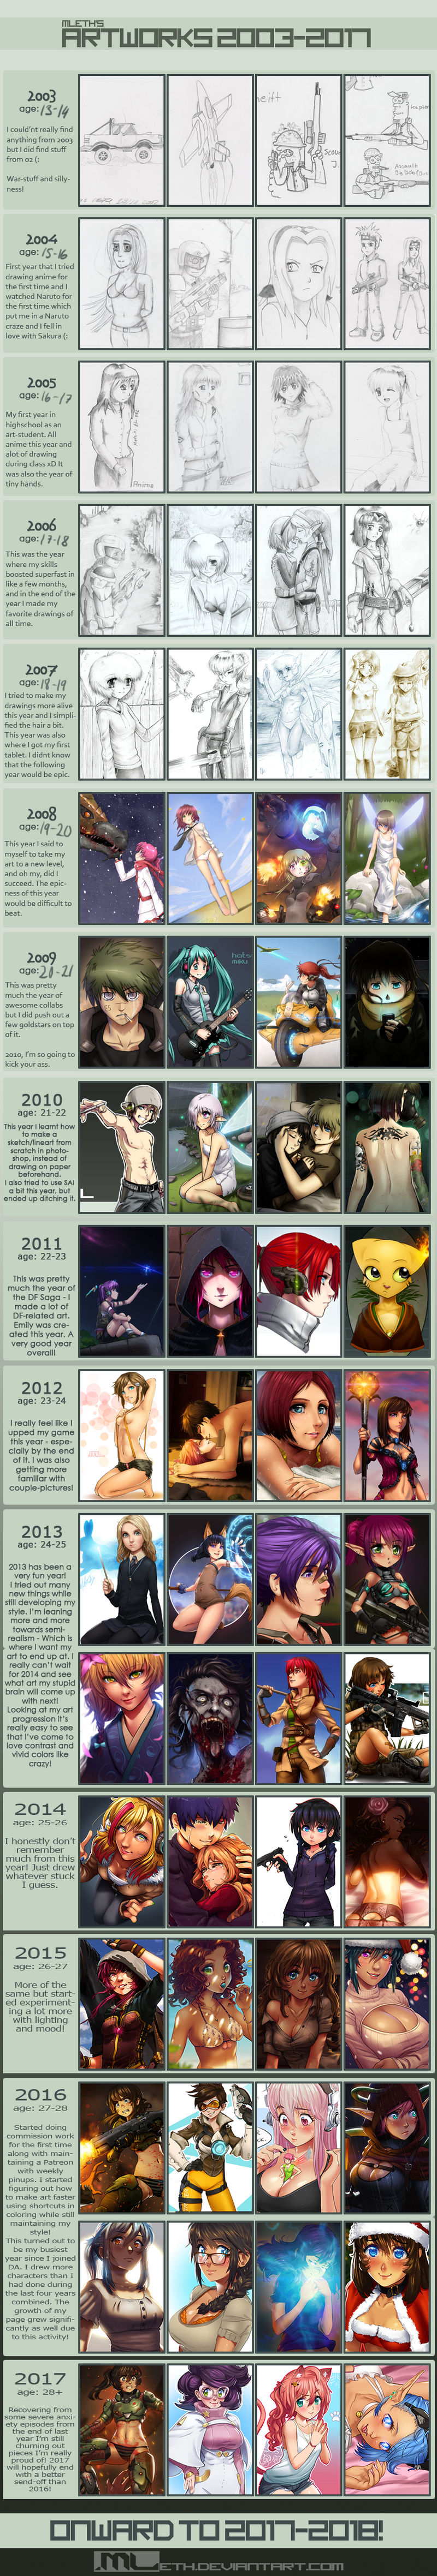 2003-2017 Progress meme